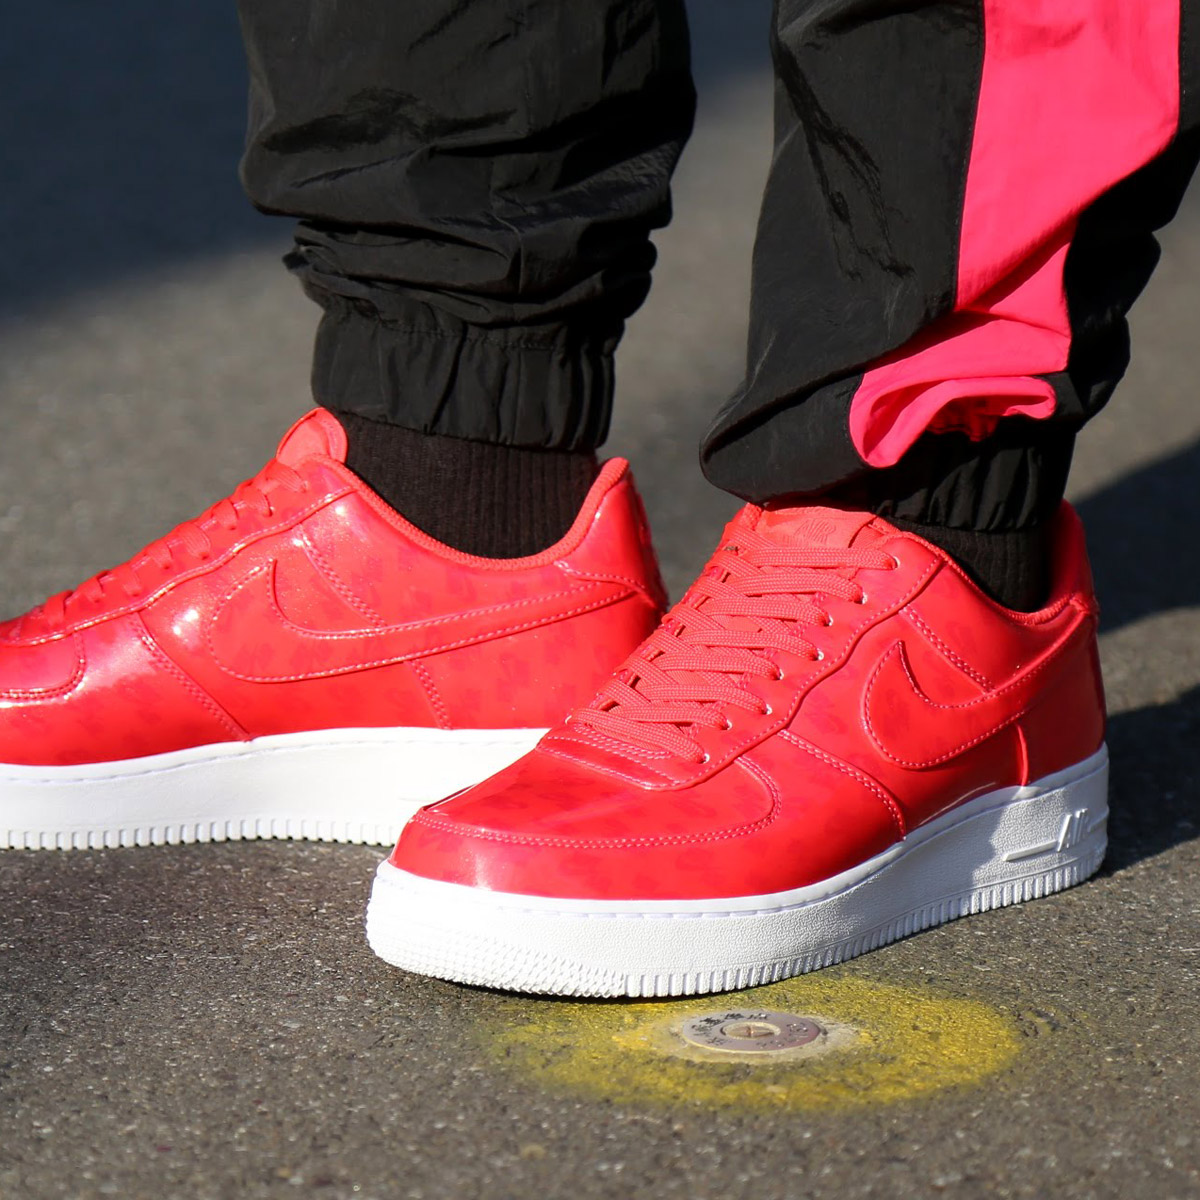 ccede2d7ca4 NIKE AIR FORCE 1 '07 LV8 UV (Nike air force 1 07 LV8 UV) (SIREN RED/SIREN  RED-WHITE-WHITE) 18SU-I